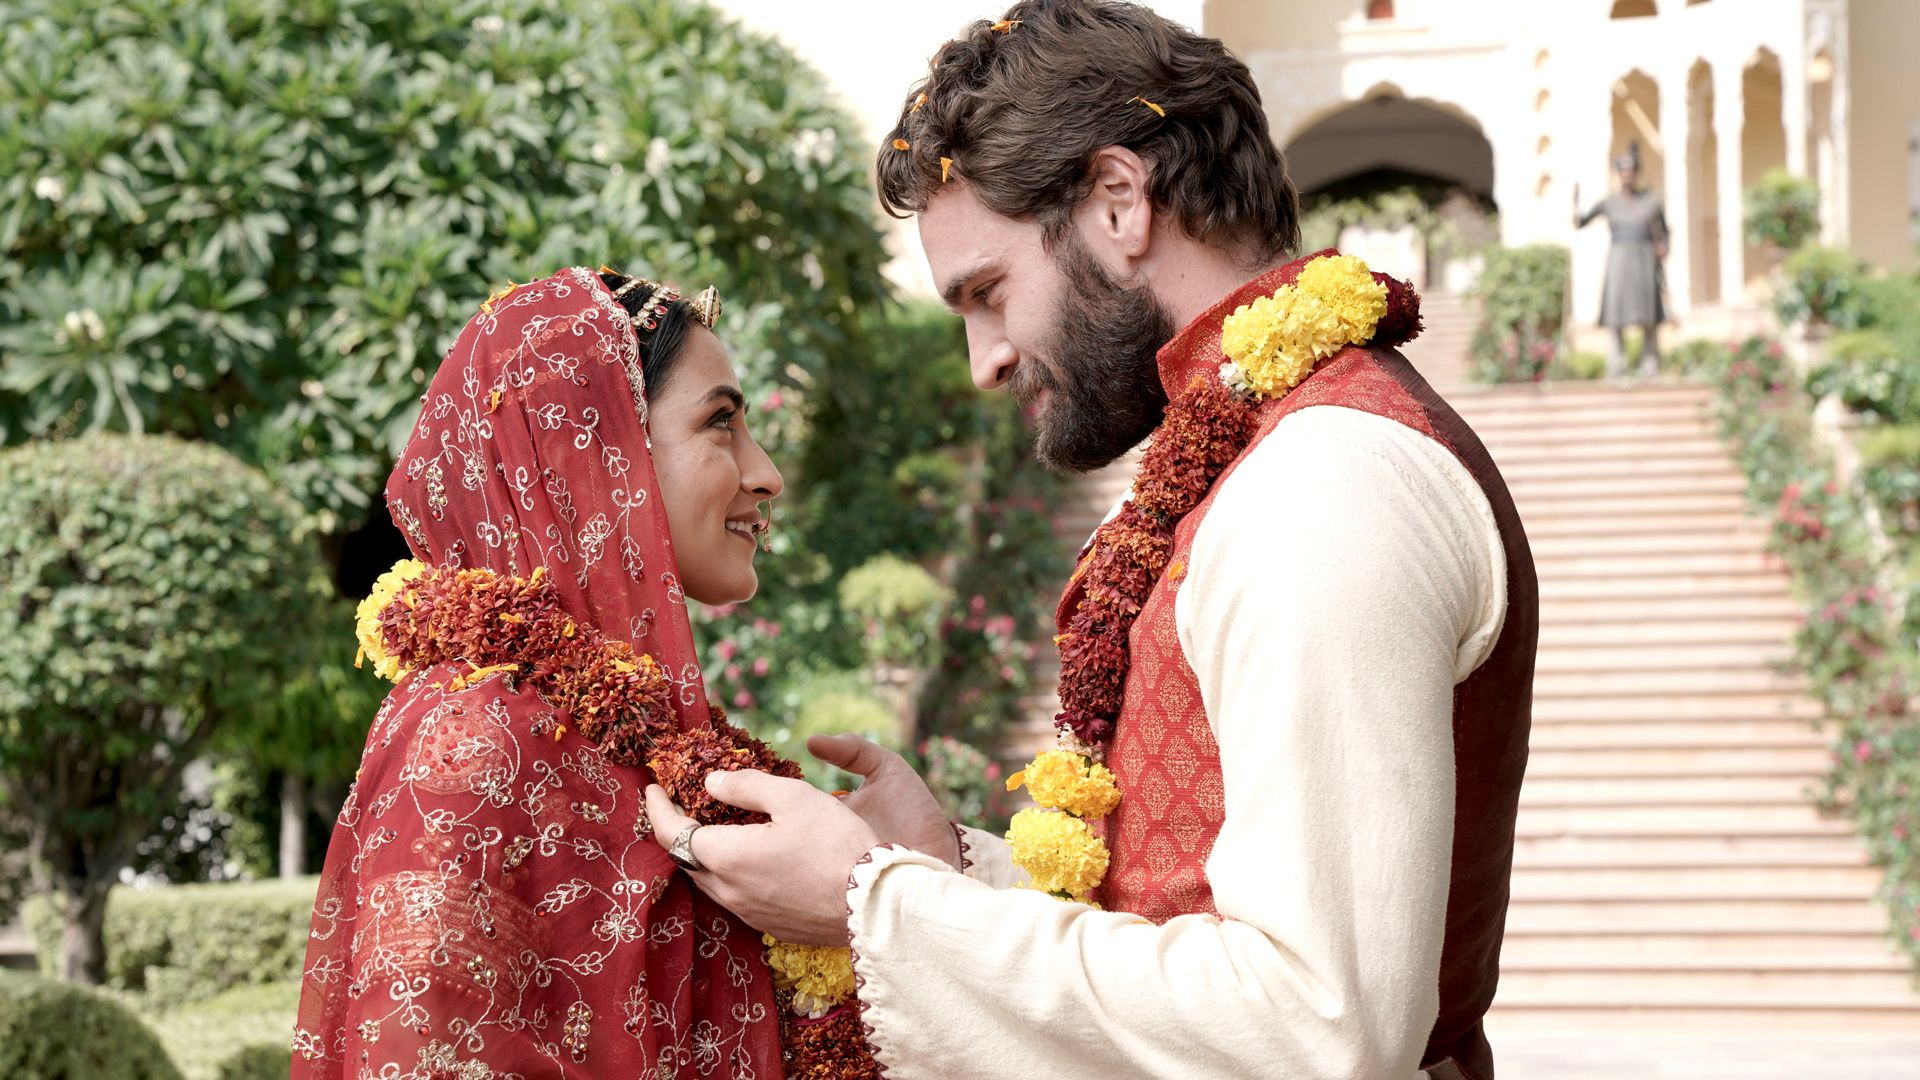 Beecham House Episode 4